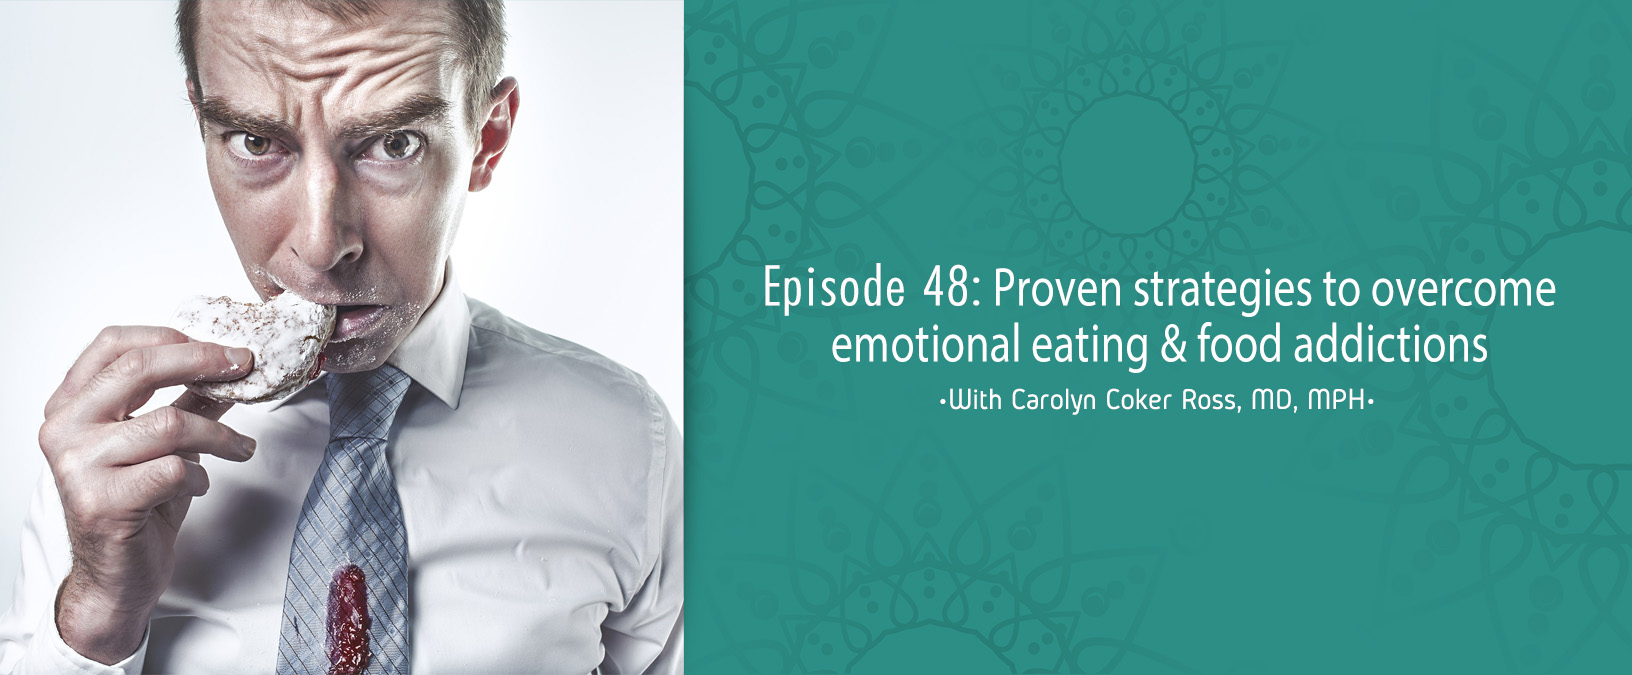 Proven strategies to overcome emotional eating & food addictions